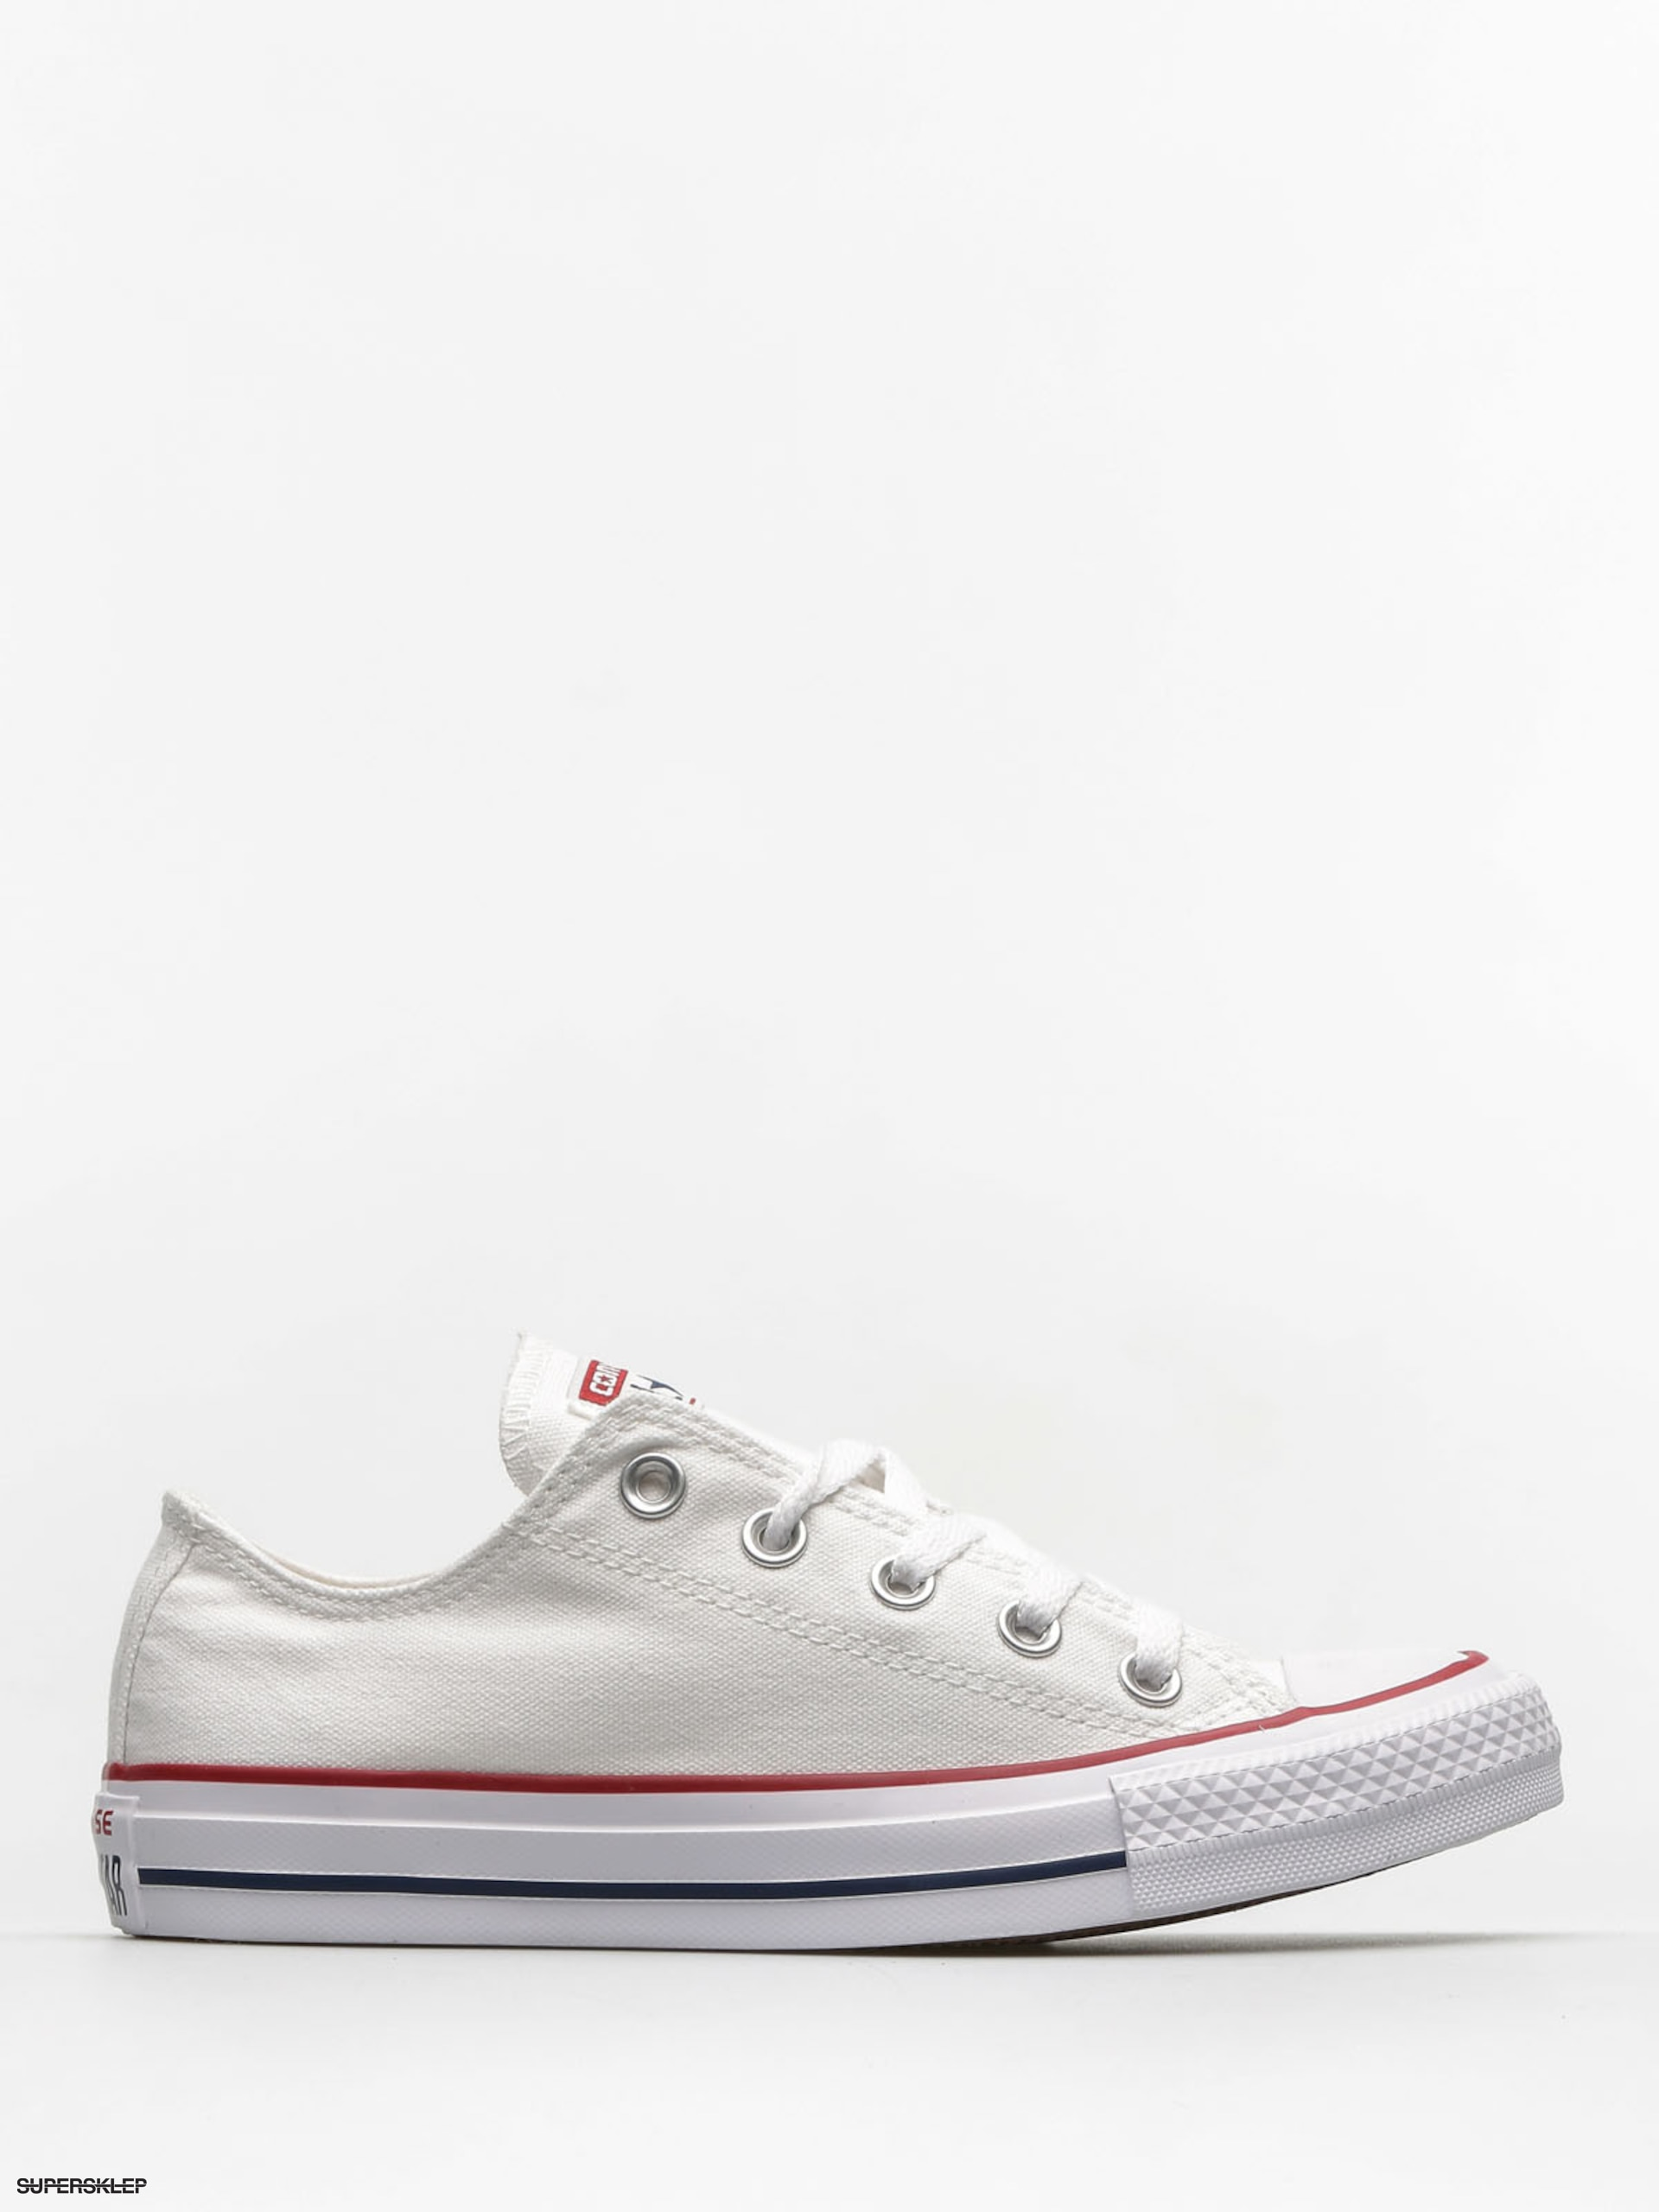 fbf887634 Tenisky Converse Chuck Taylor All Star (optic white)